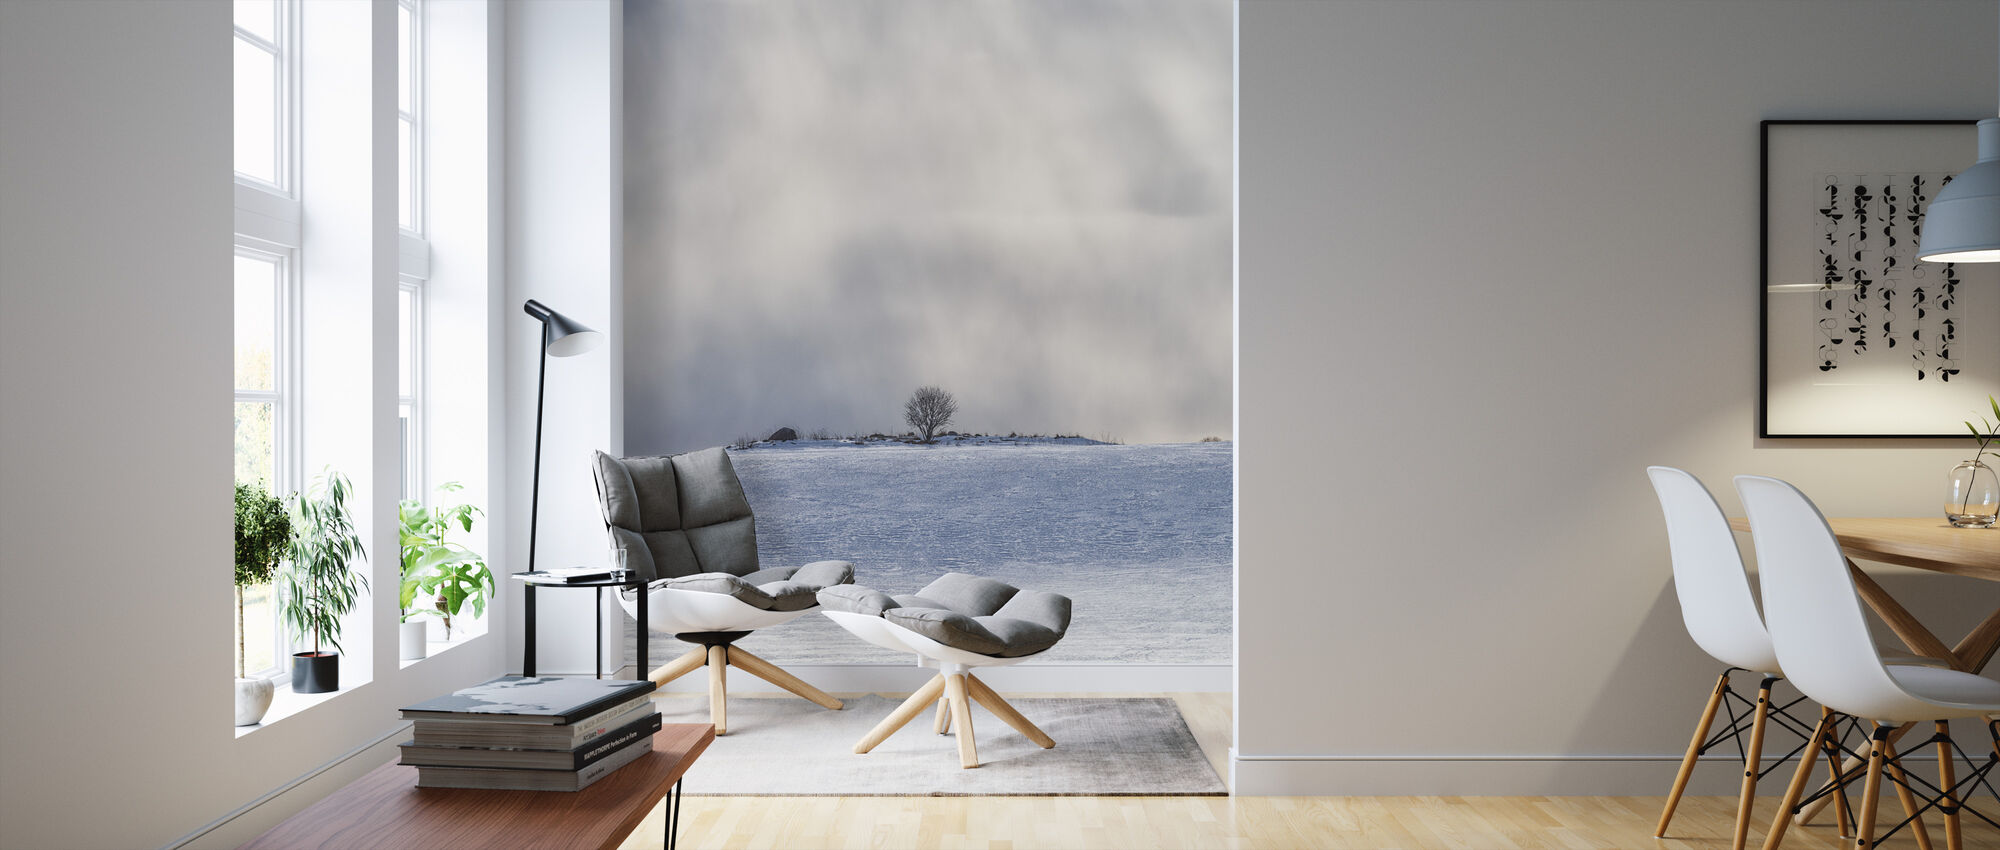 cold horizon mit fototapeten einrichten photowall. Black Bedroom Furniture Sets. Home Design Ideas